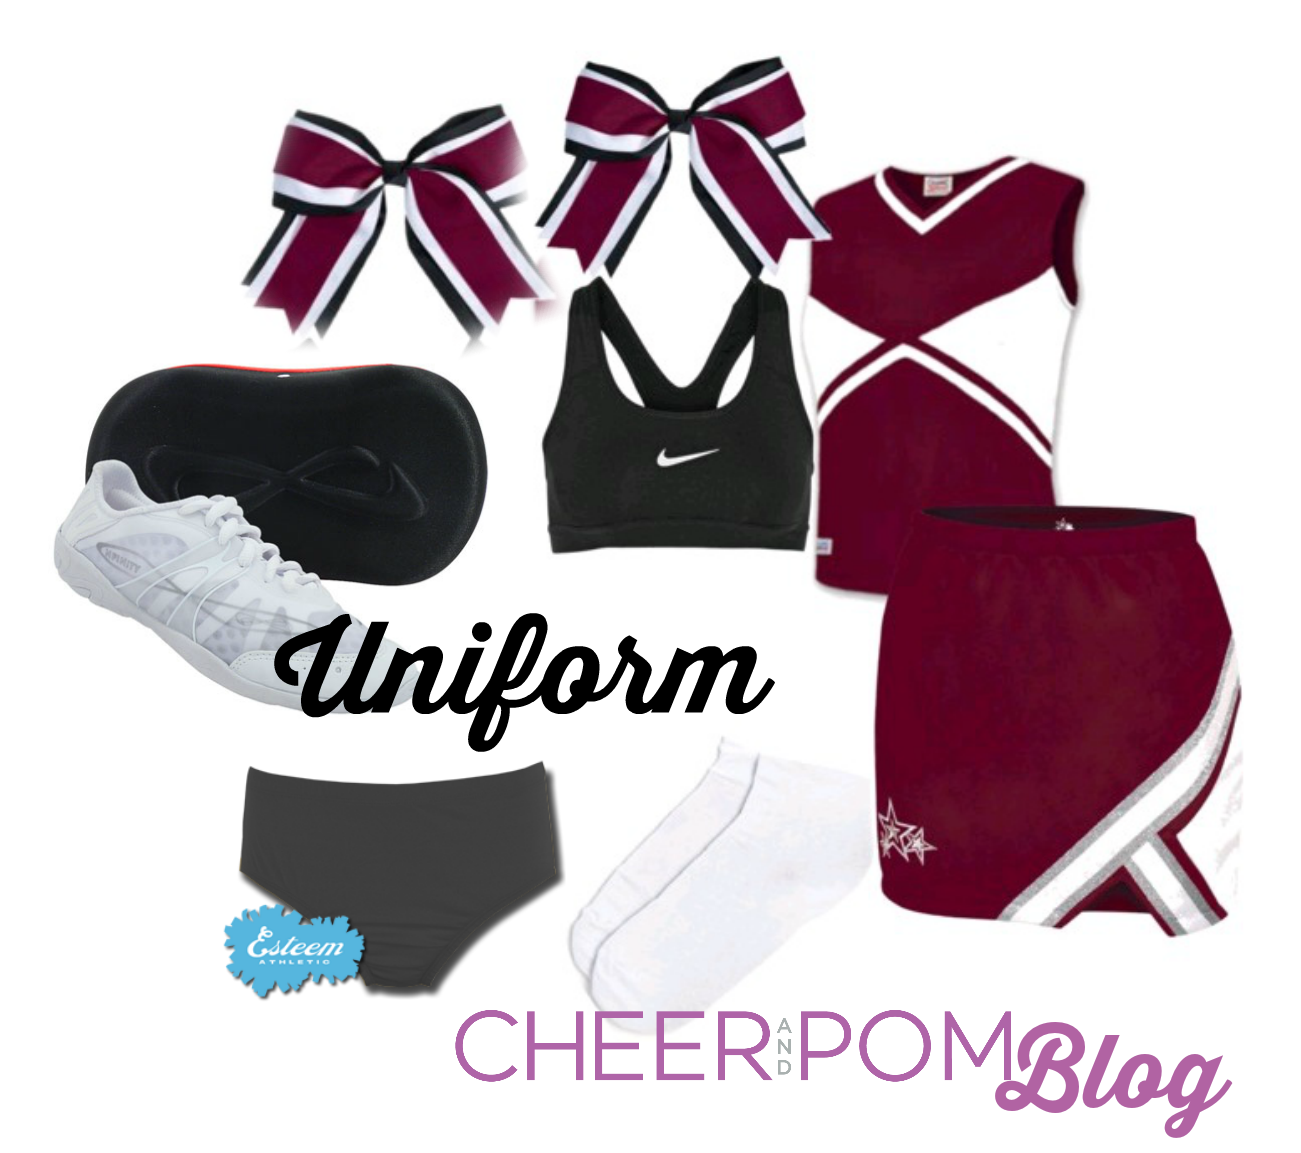 CheerandPom Blog: Cheerleading Competition Check List